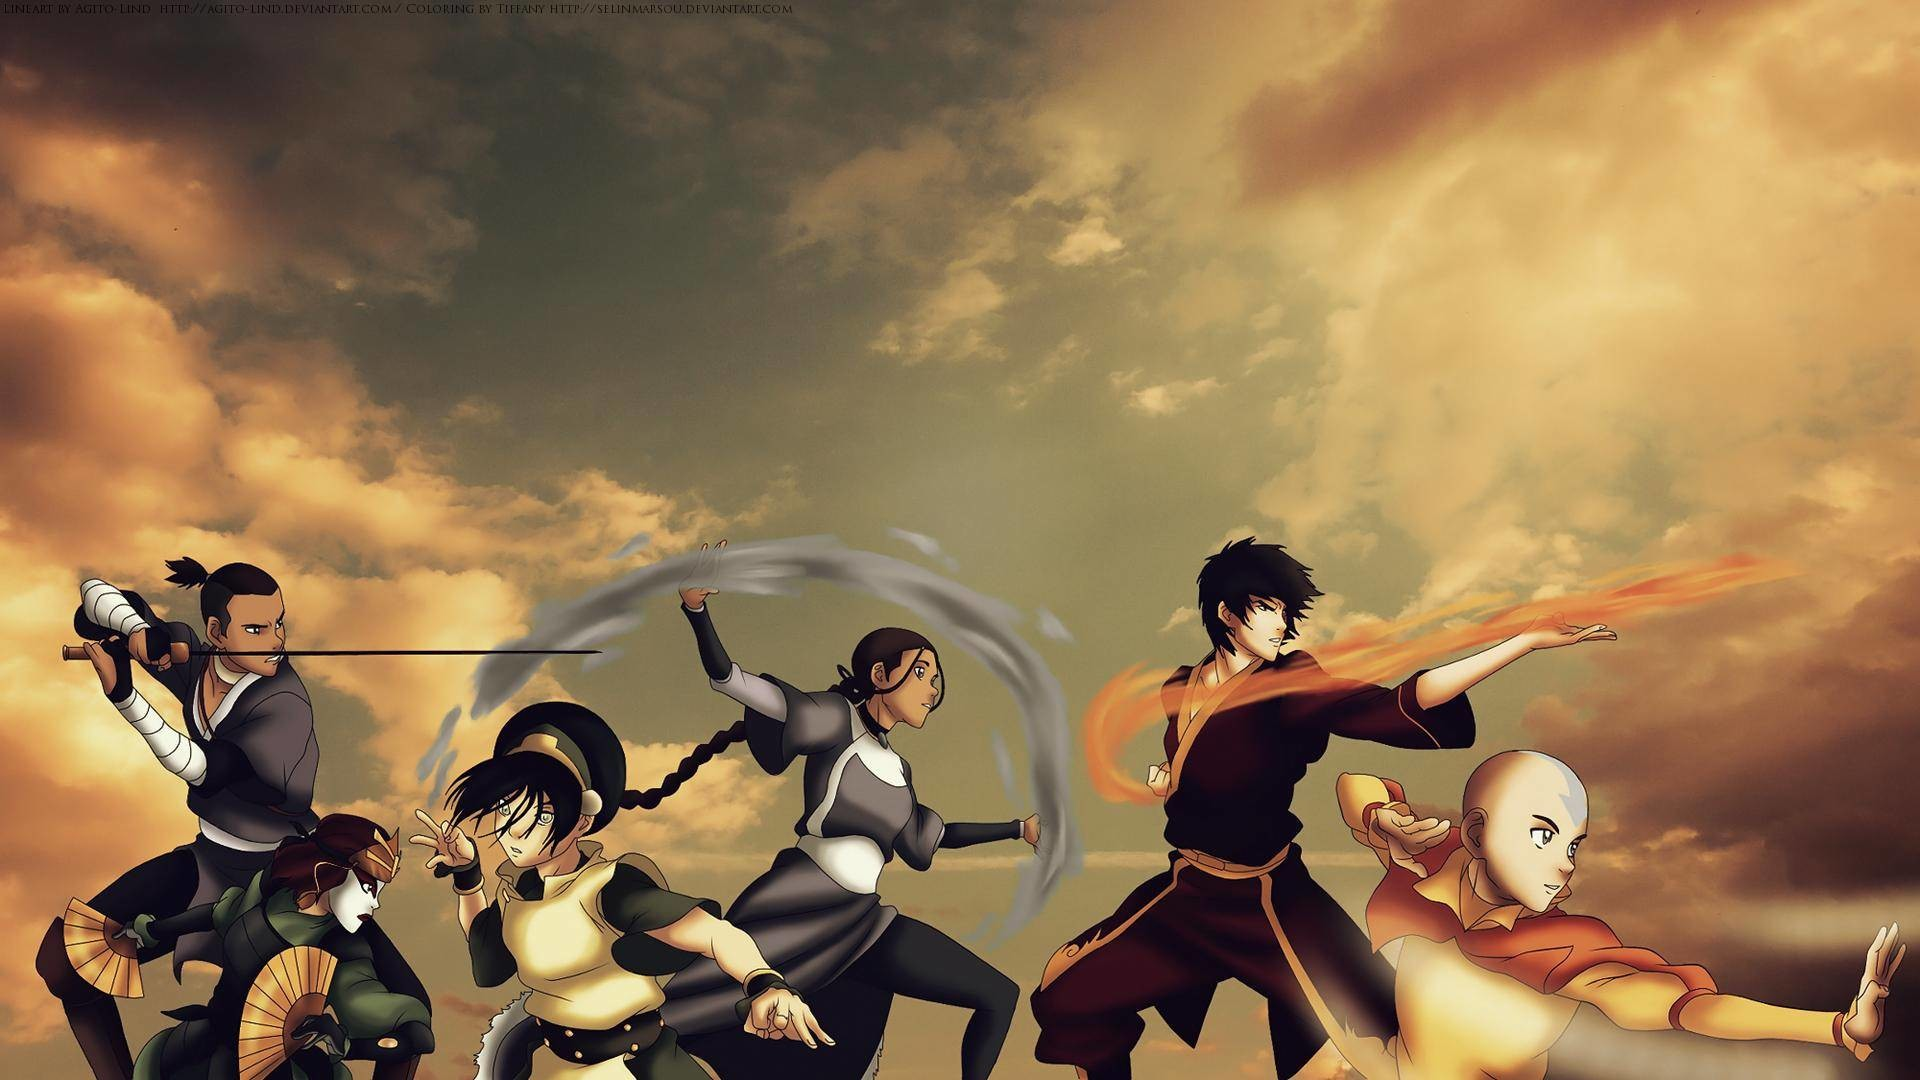 1920x1080 Legend of Korra Wallpaper HD - WallpaperSafari